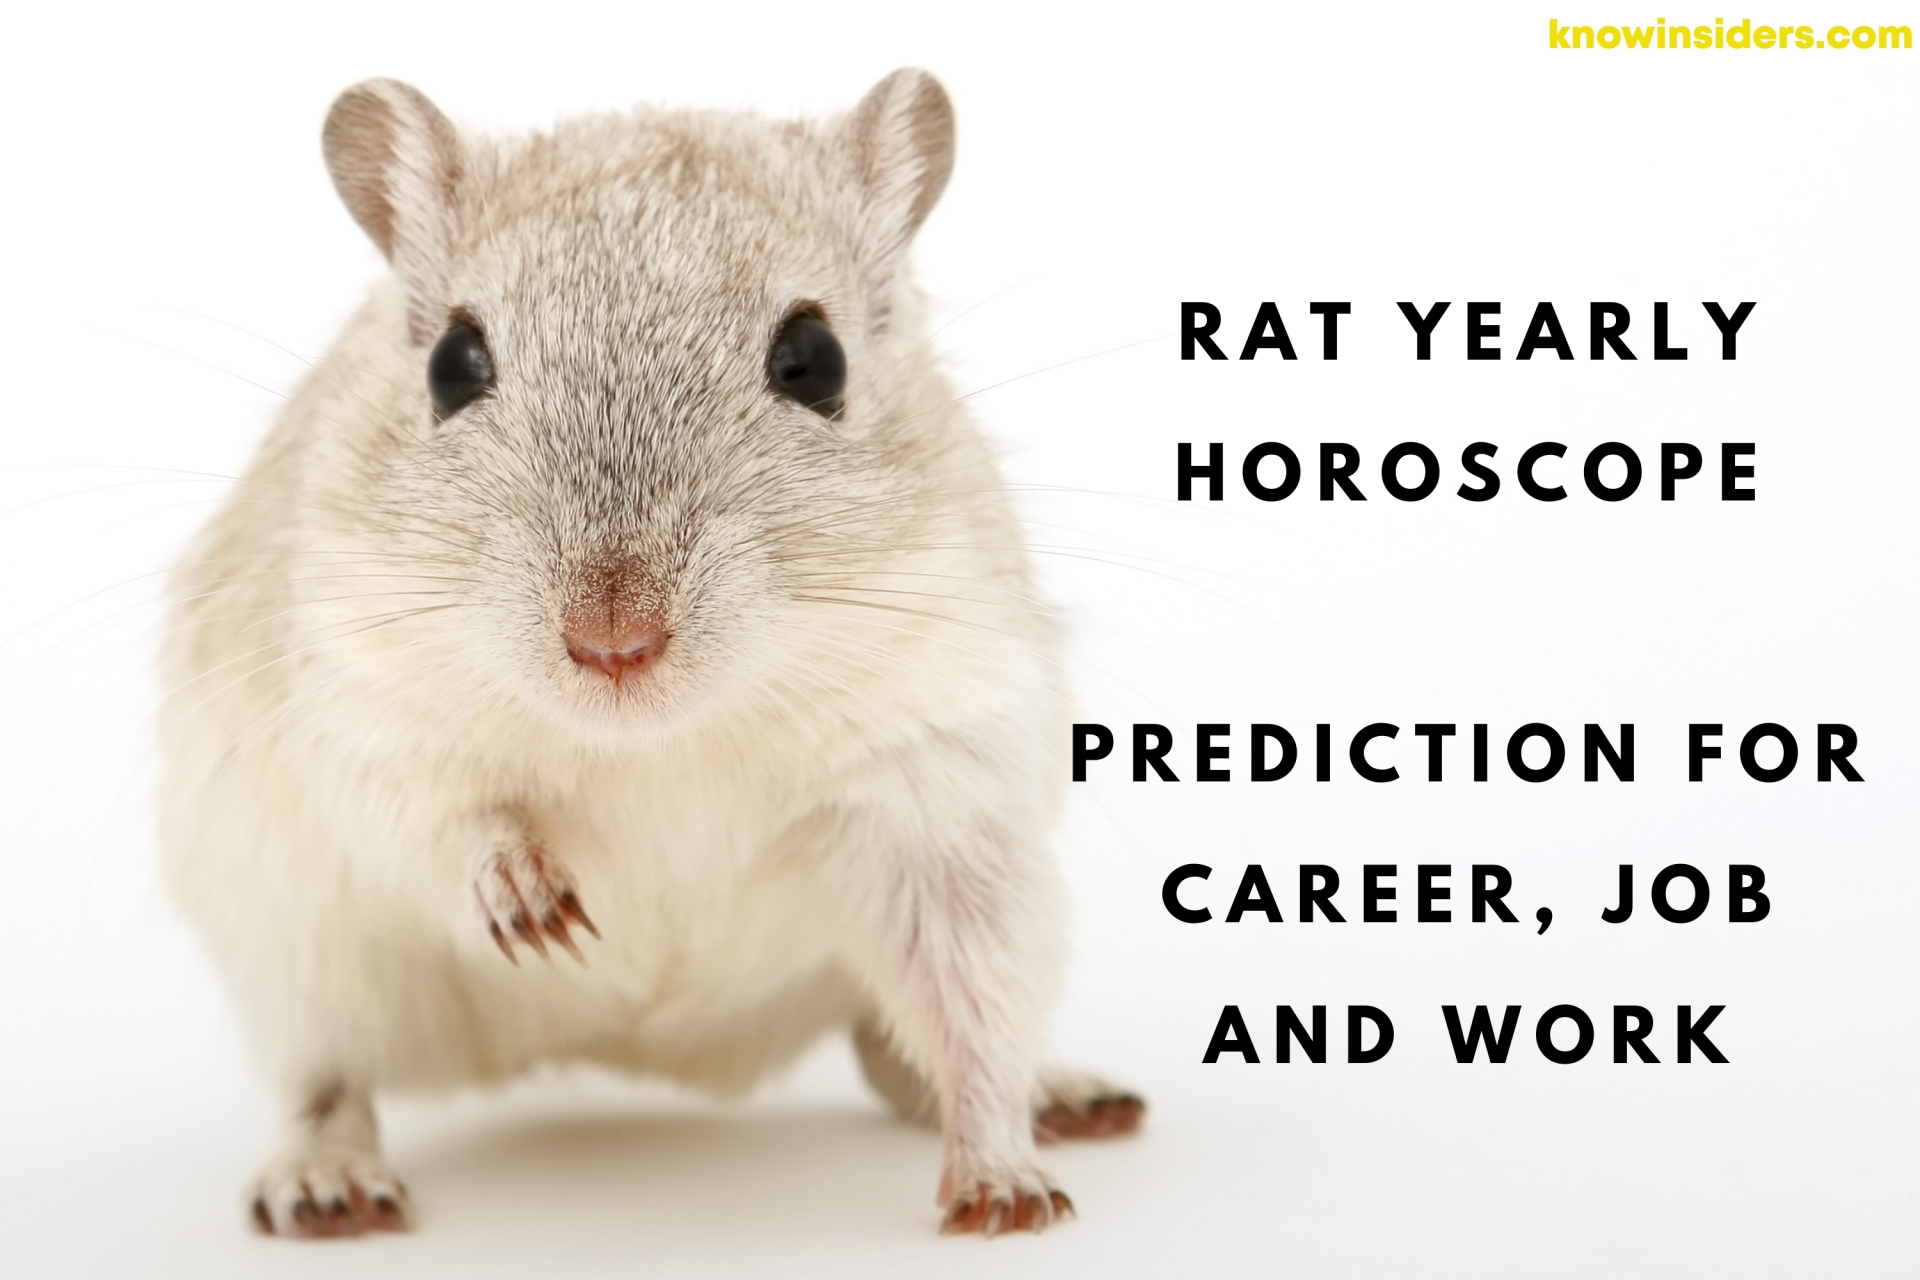 RAT Yearly Horoscope 2022: Prediction for Career, Job and Work